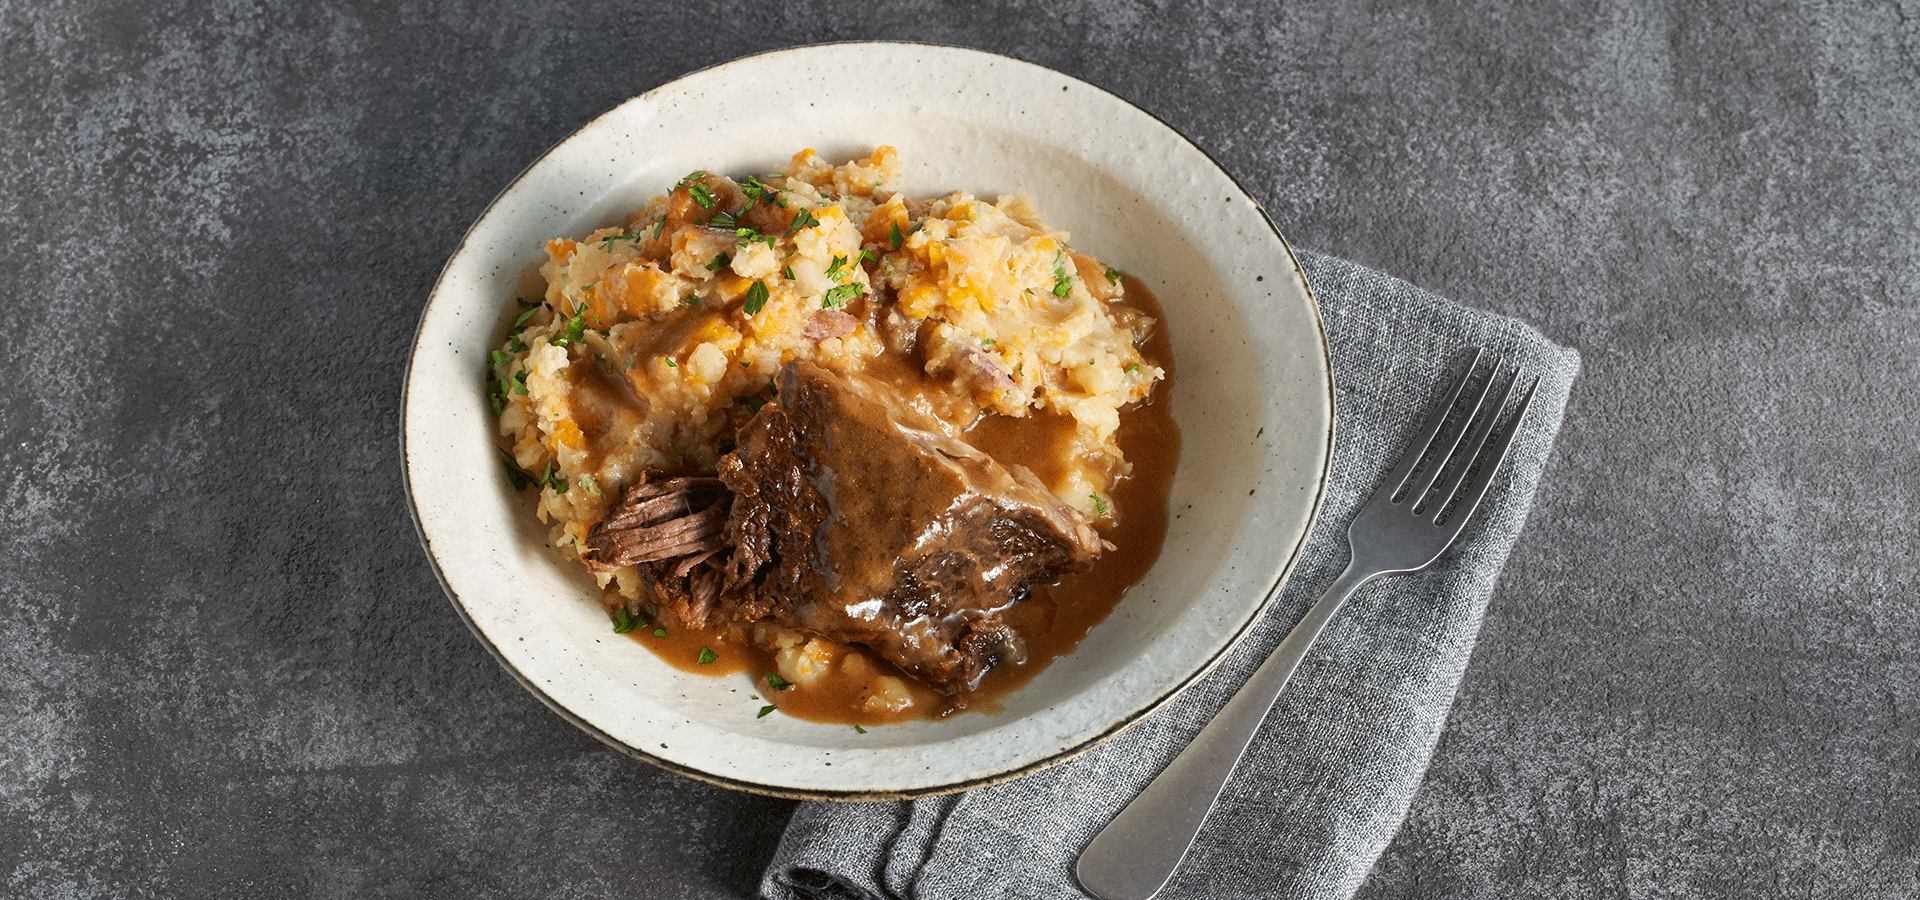 Beef Short Ribs with Vegetable Mash